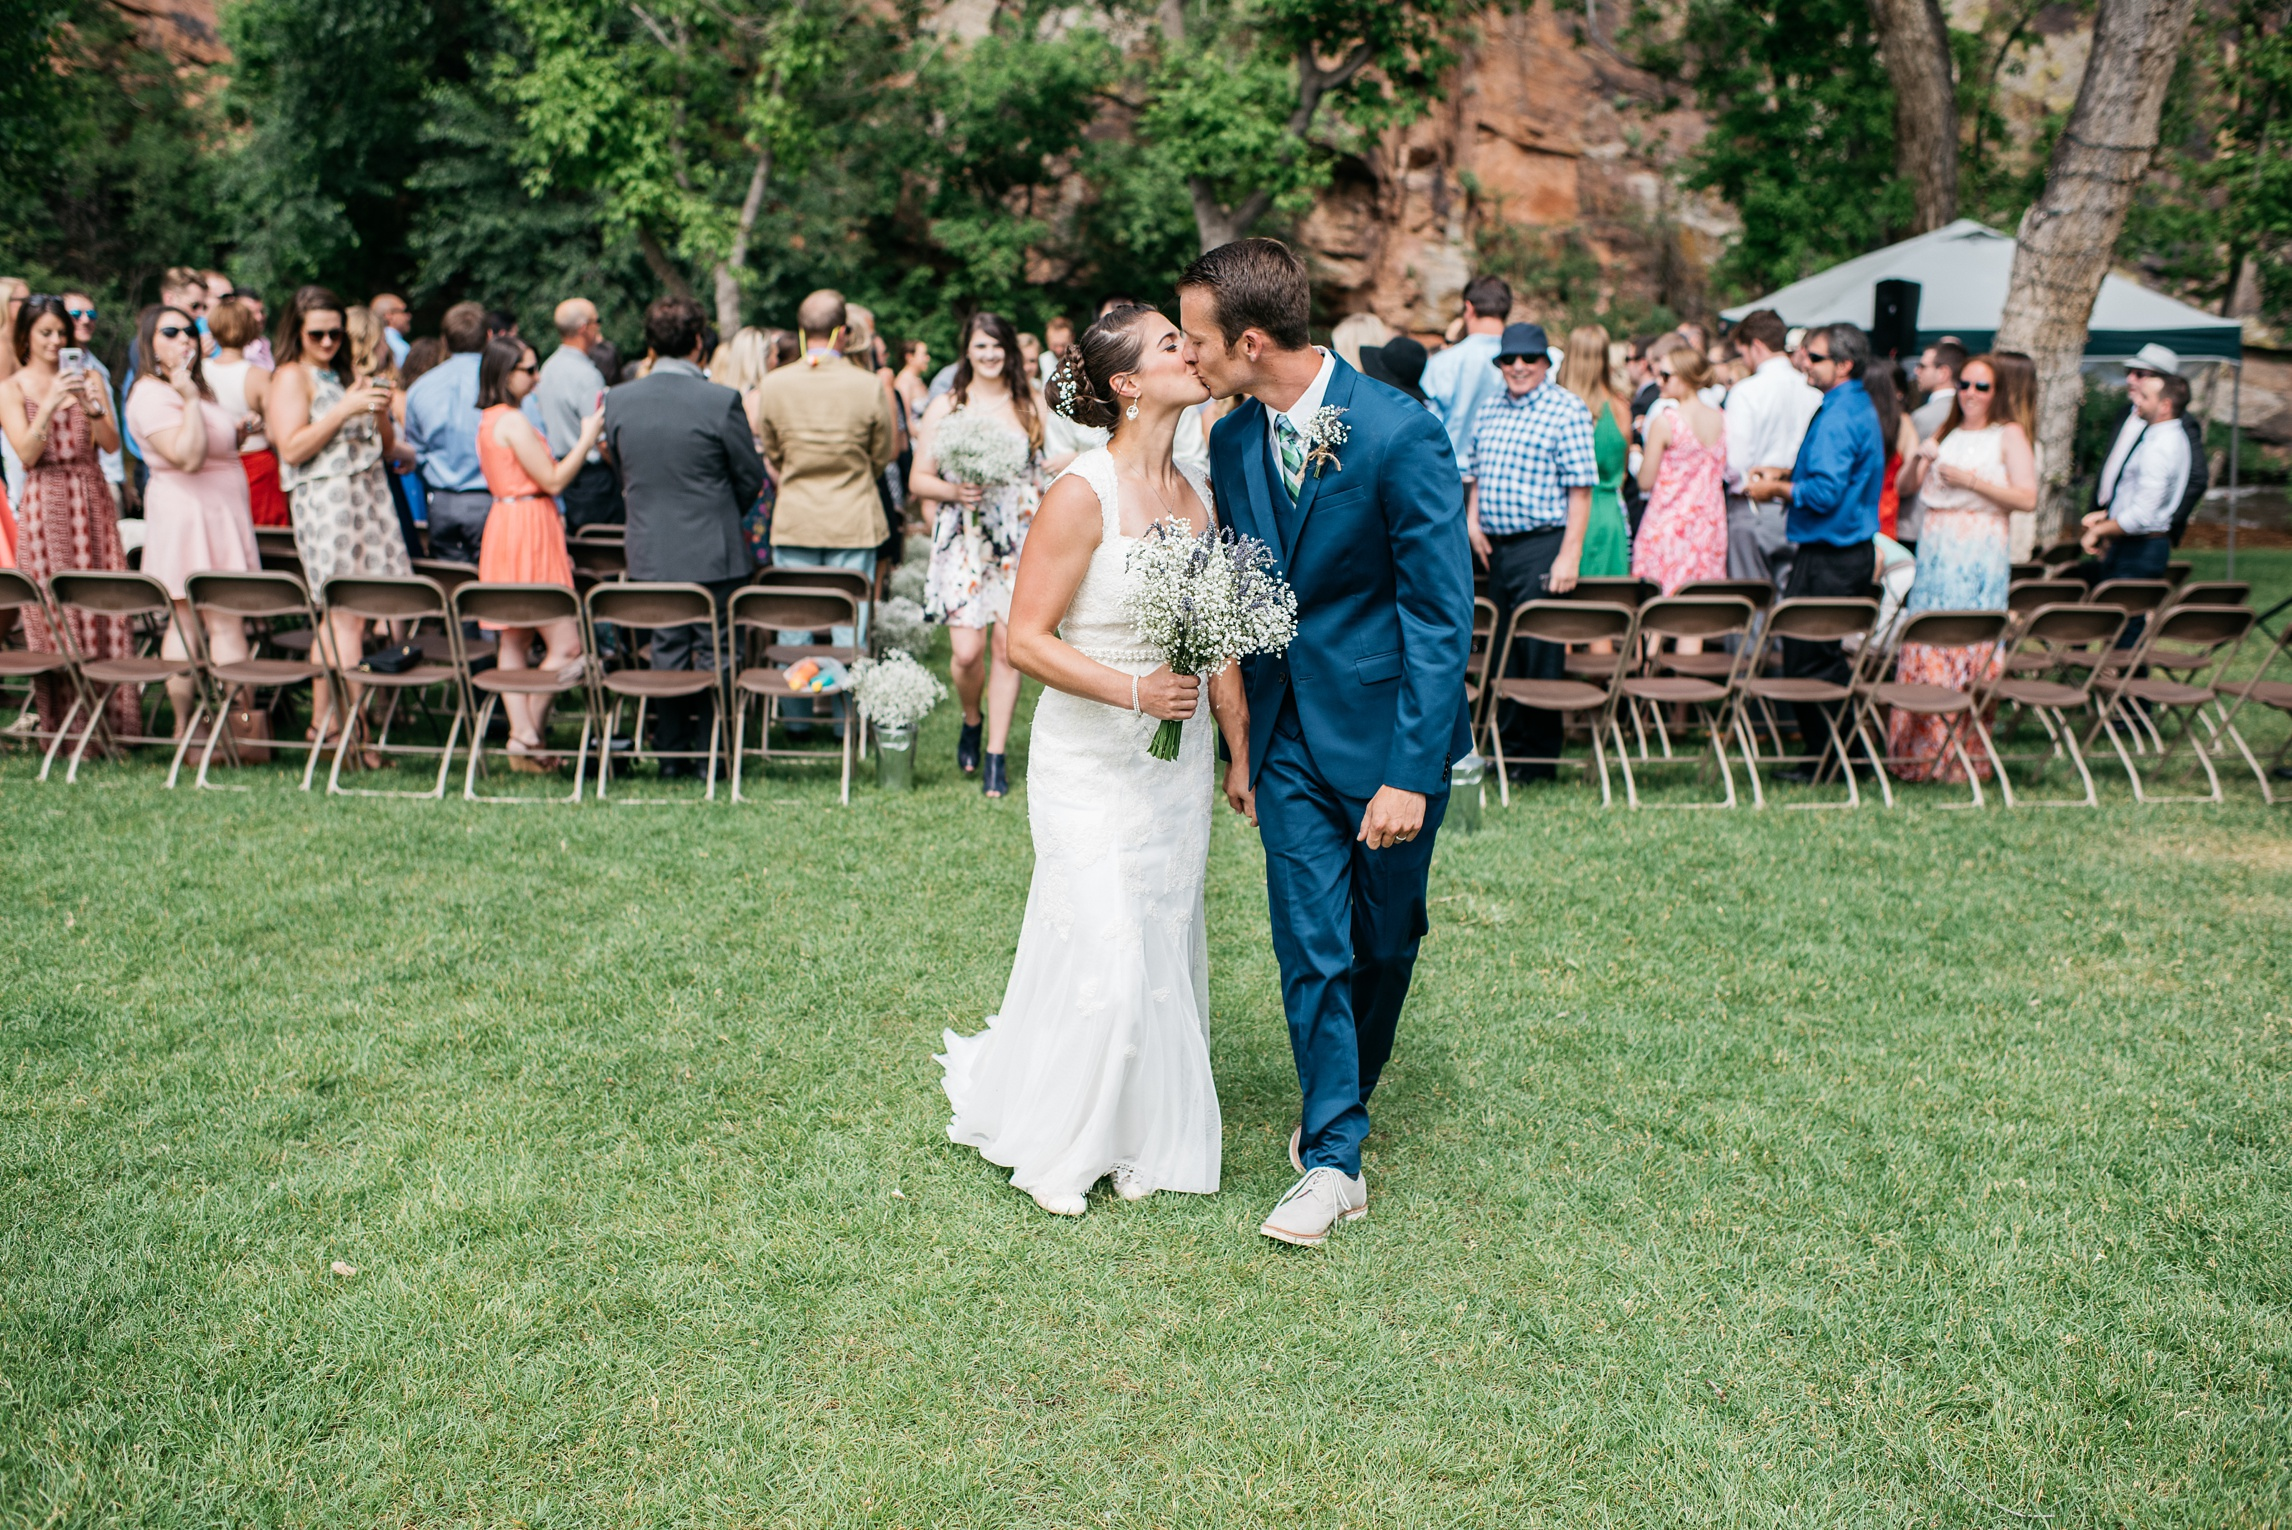 Melissa and Patrick kiss after their wedding ceremony at Planet Bluegrass in Lyons, Colorado. Wedding photography by Sonja Salzburg of Sonja K Photography.